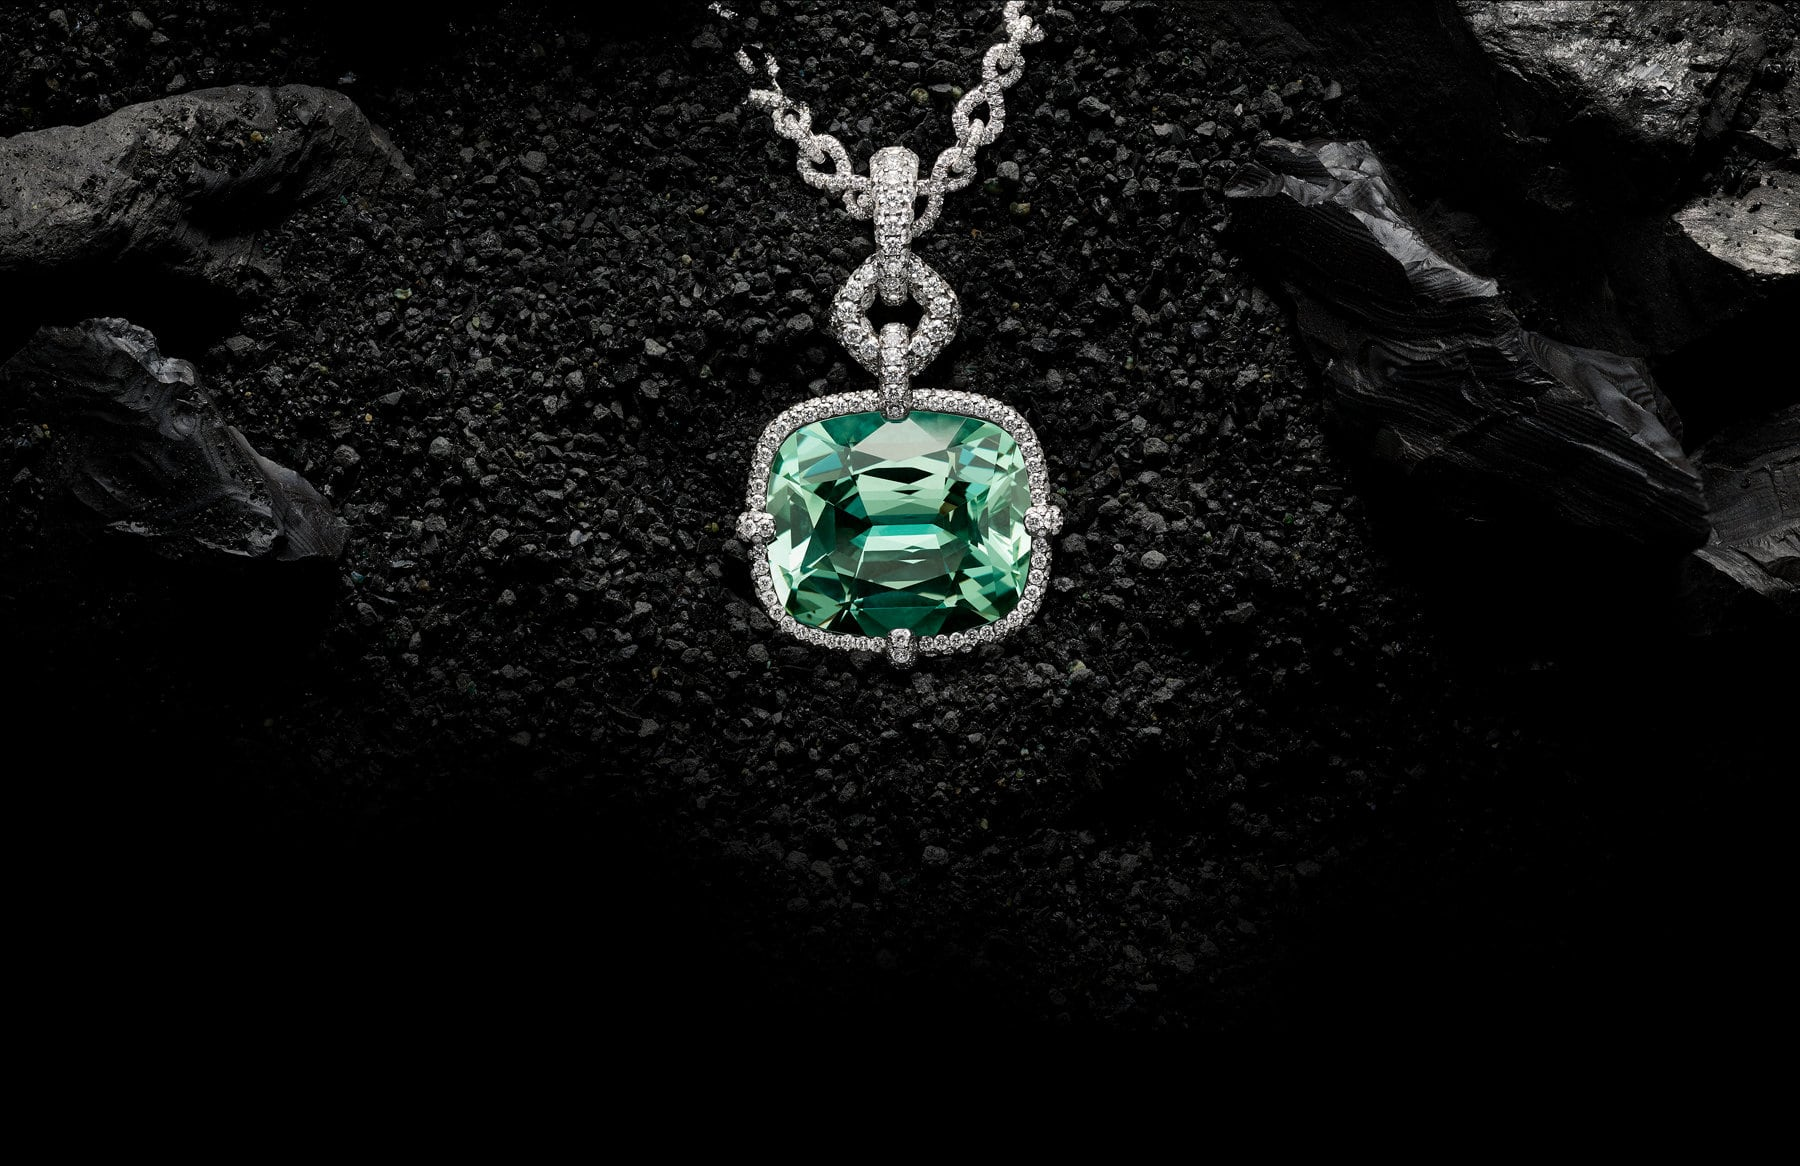 A color photo shows a David Yurman High Jewelry Gems pendant necklace shot on top of black pebbles and larger rocks. The chain necklace is crafted from 18K white gold encrusted with pavé white diamonds with a pendant of blue tourmaline.